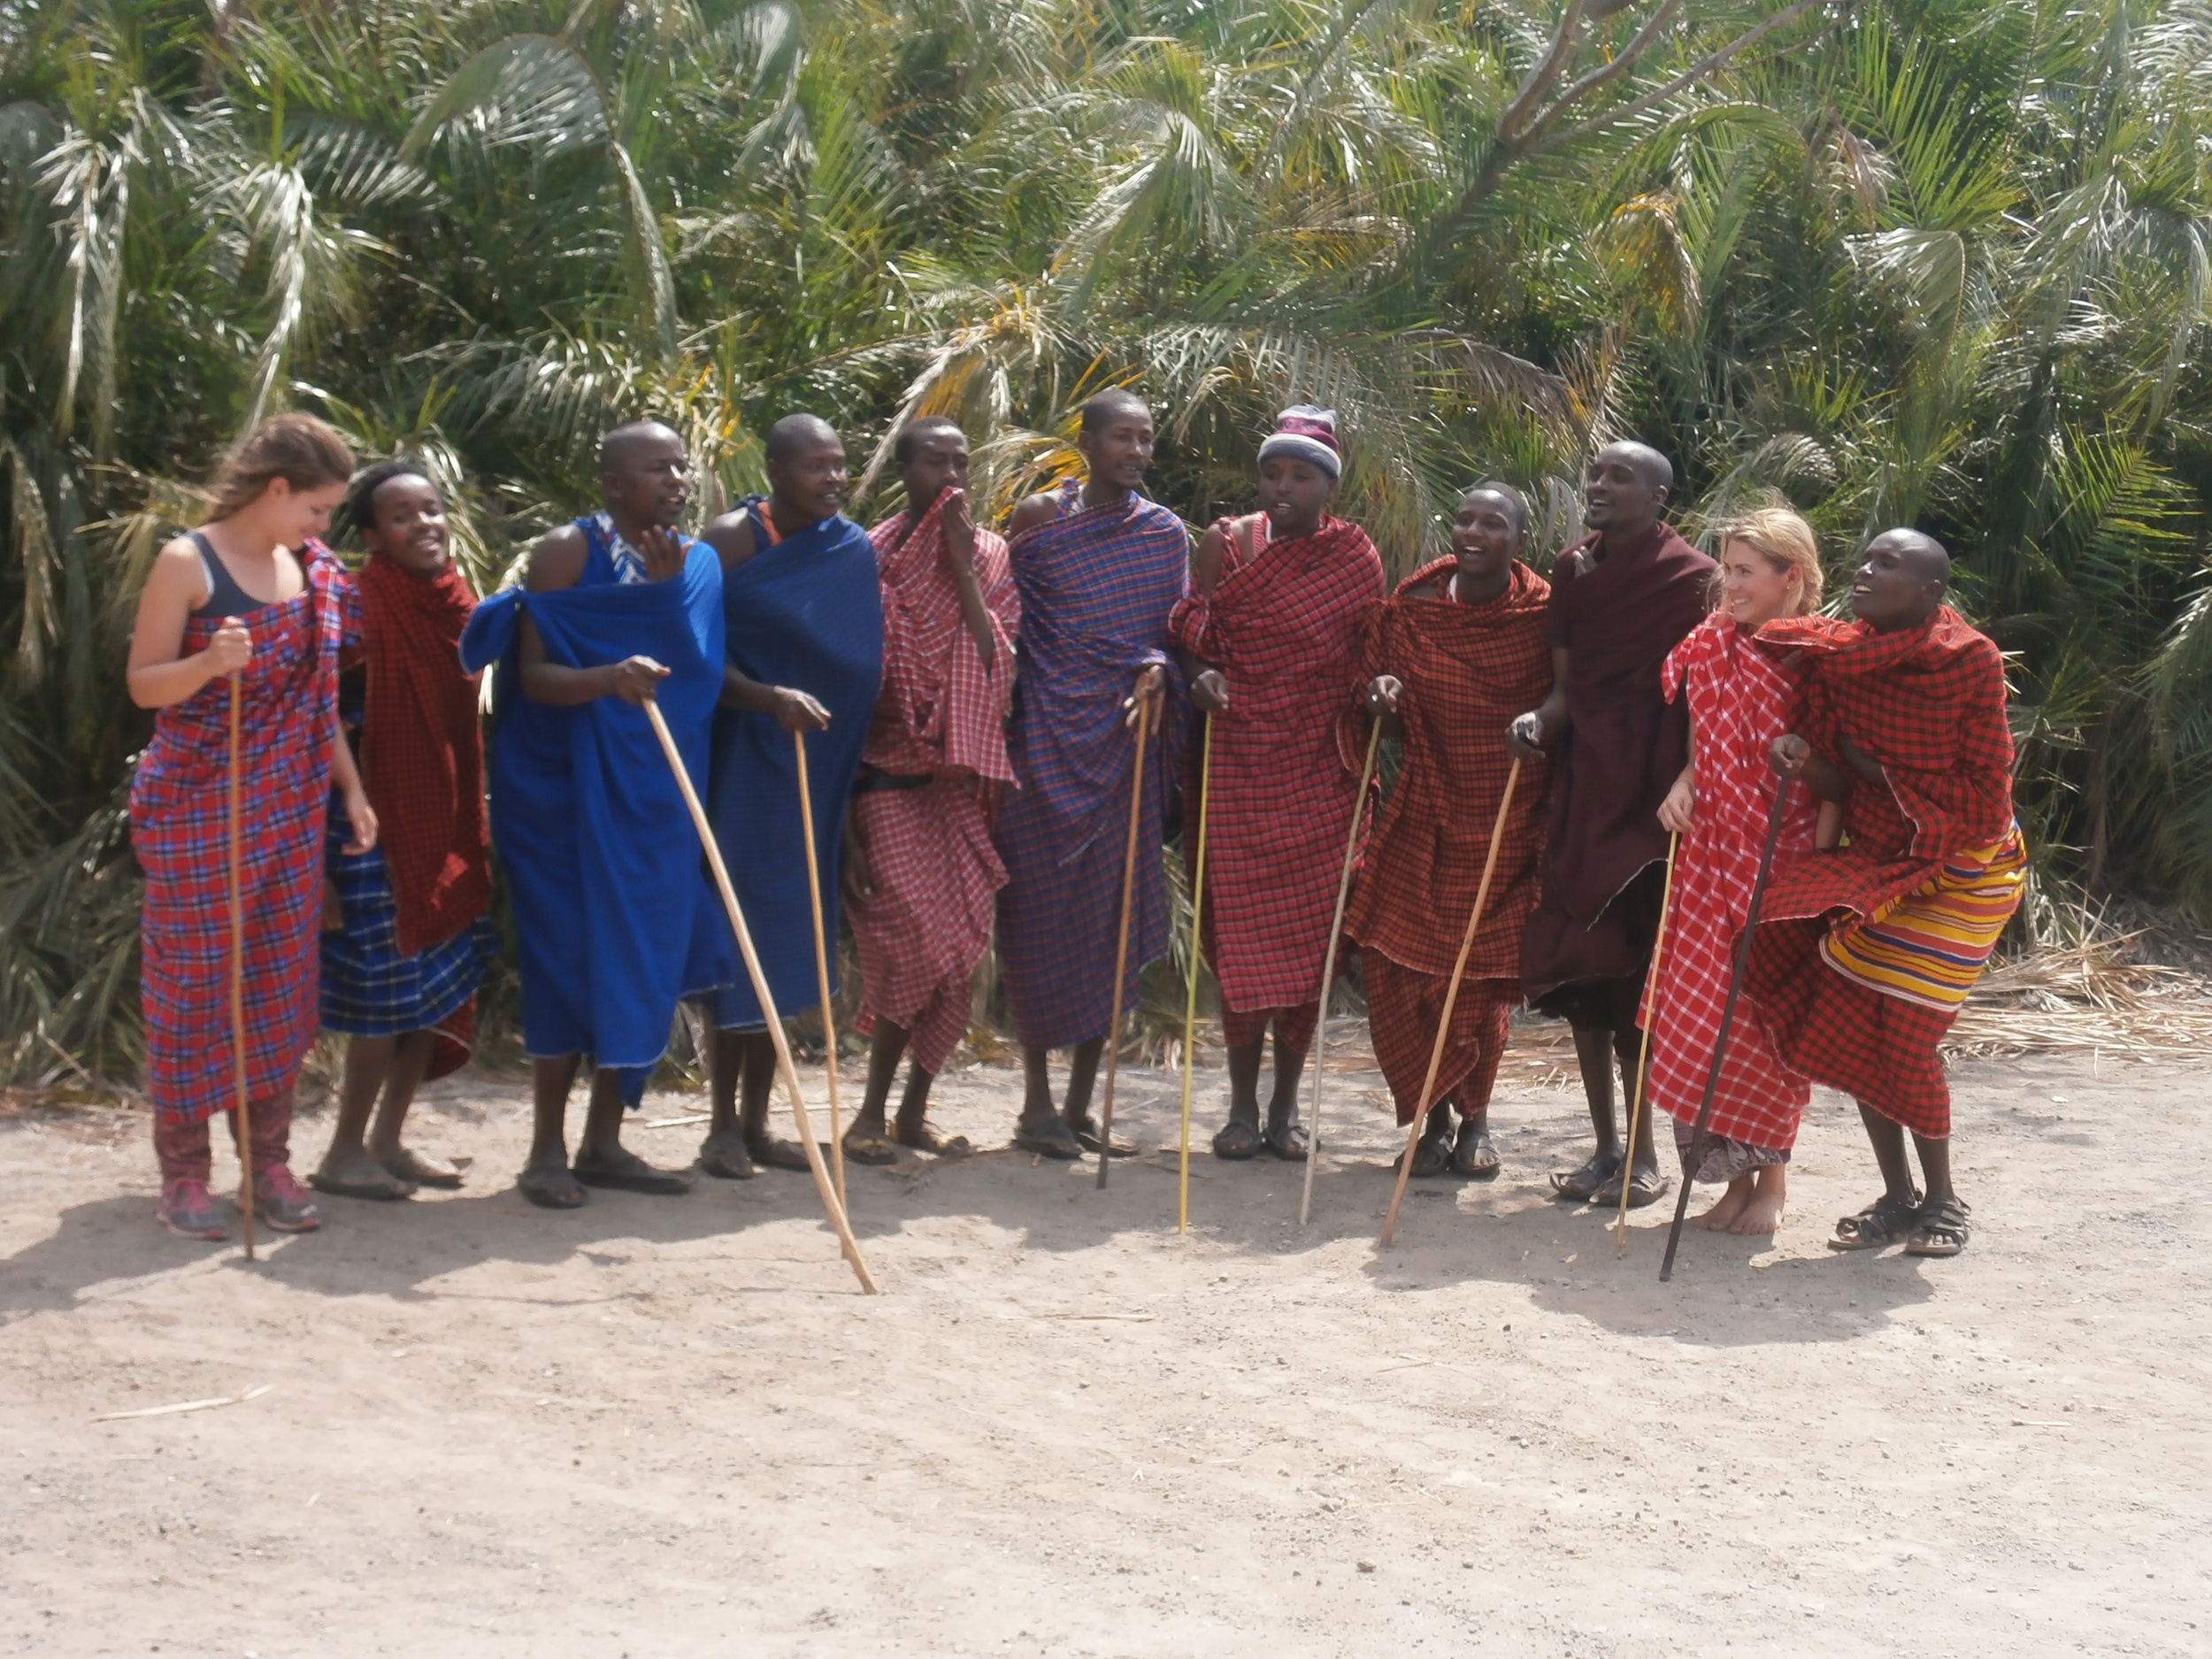 Thes maasai moran warriors really have rhytham when they dance the 'war' dance together.